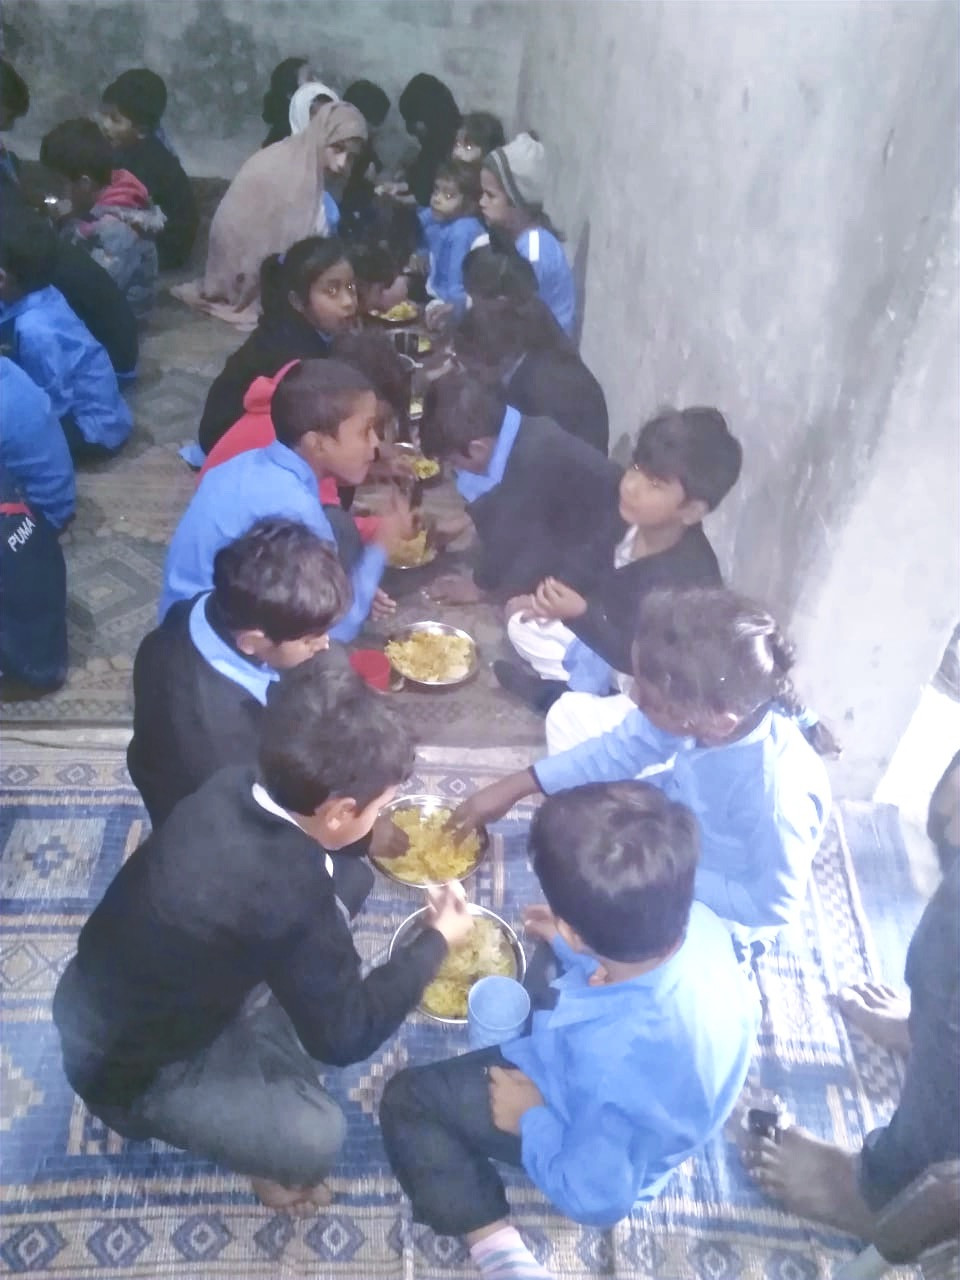 One Ummah delivers books, uniforms, shoes, and nutritious food to give students an opportunity to learn.